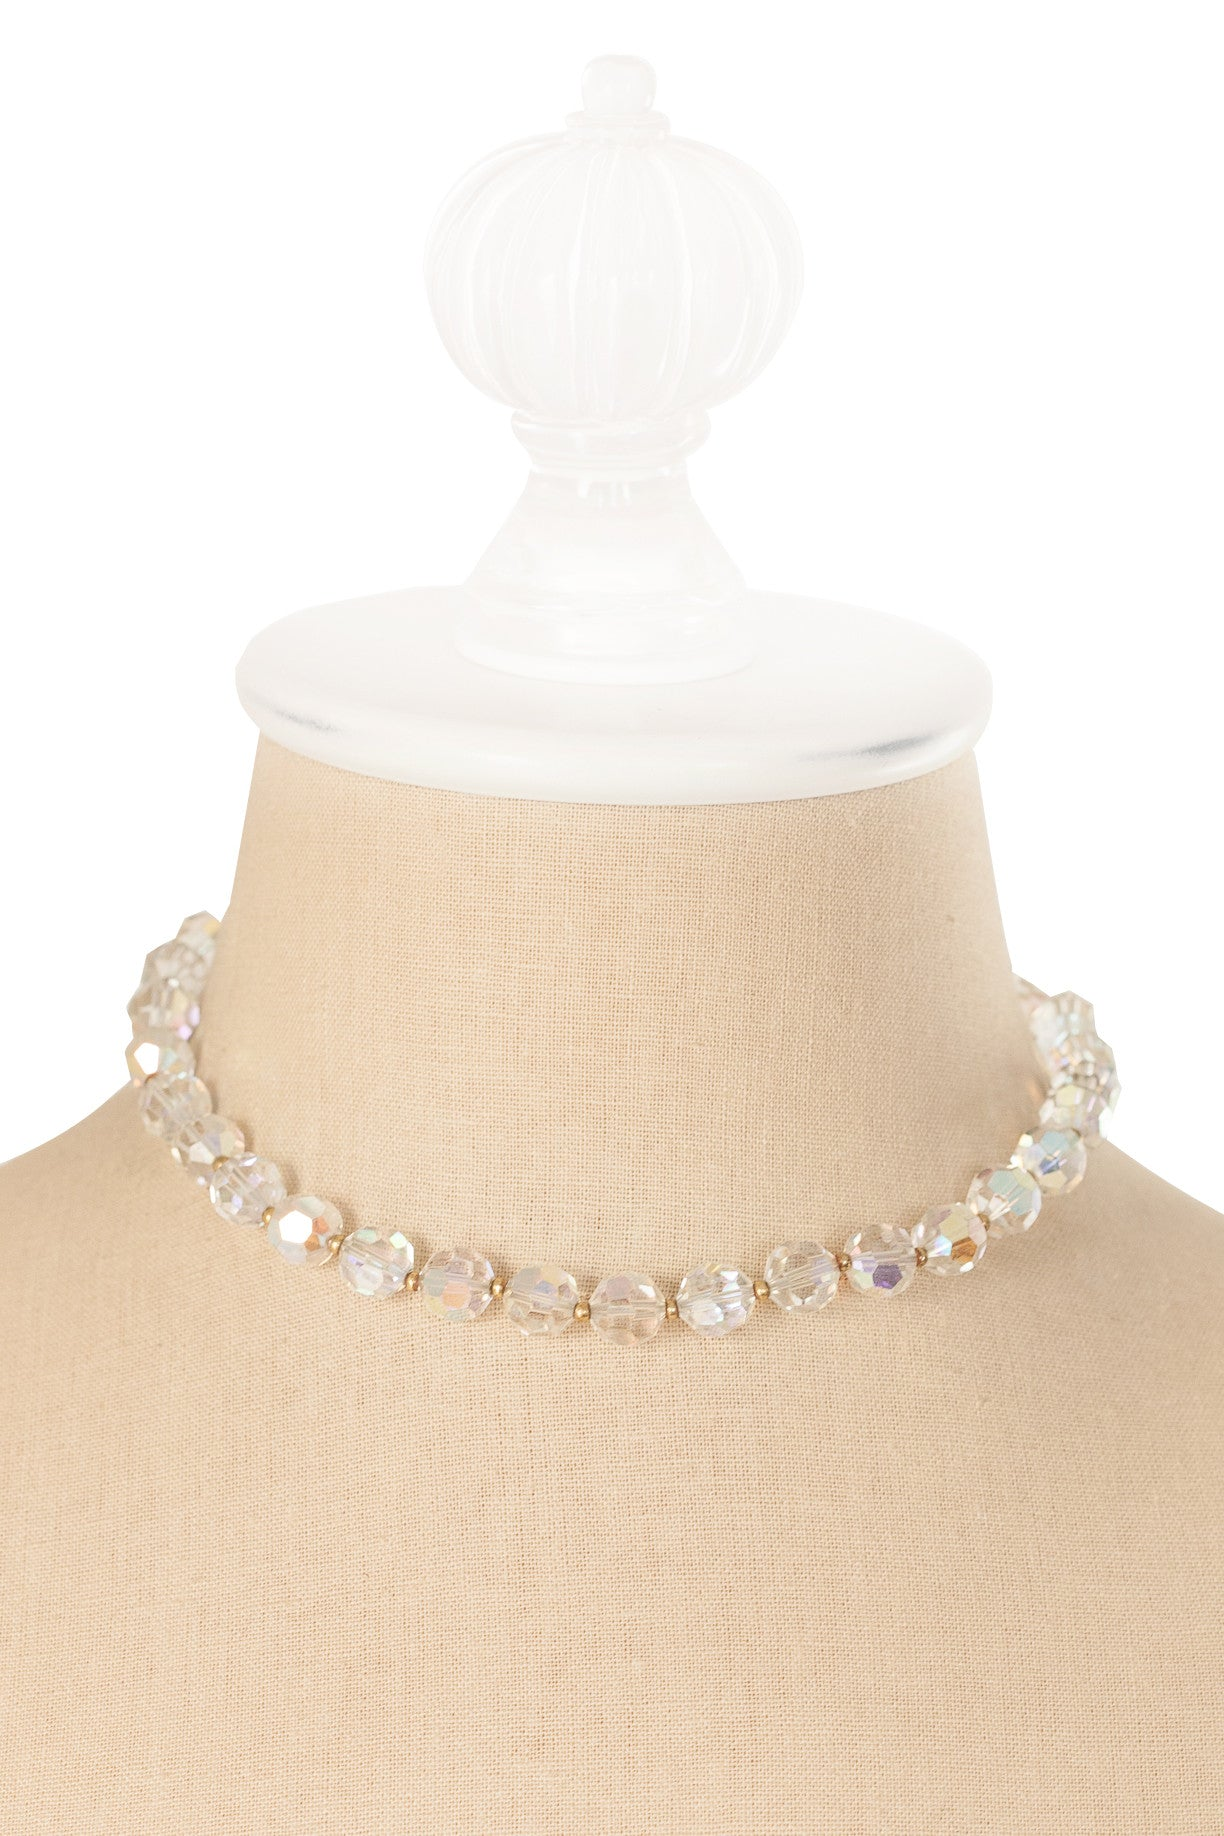 50's__Lisner__Crystal Beaded Necklace